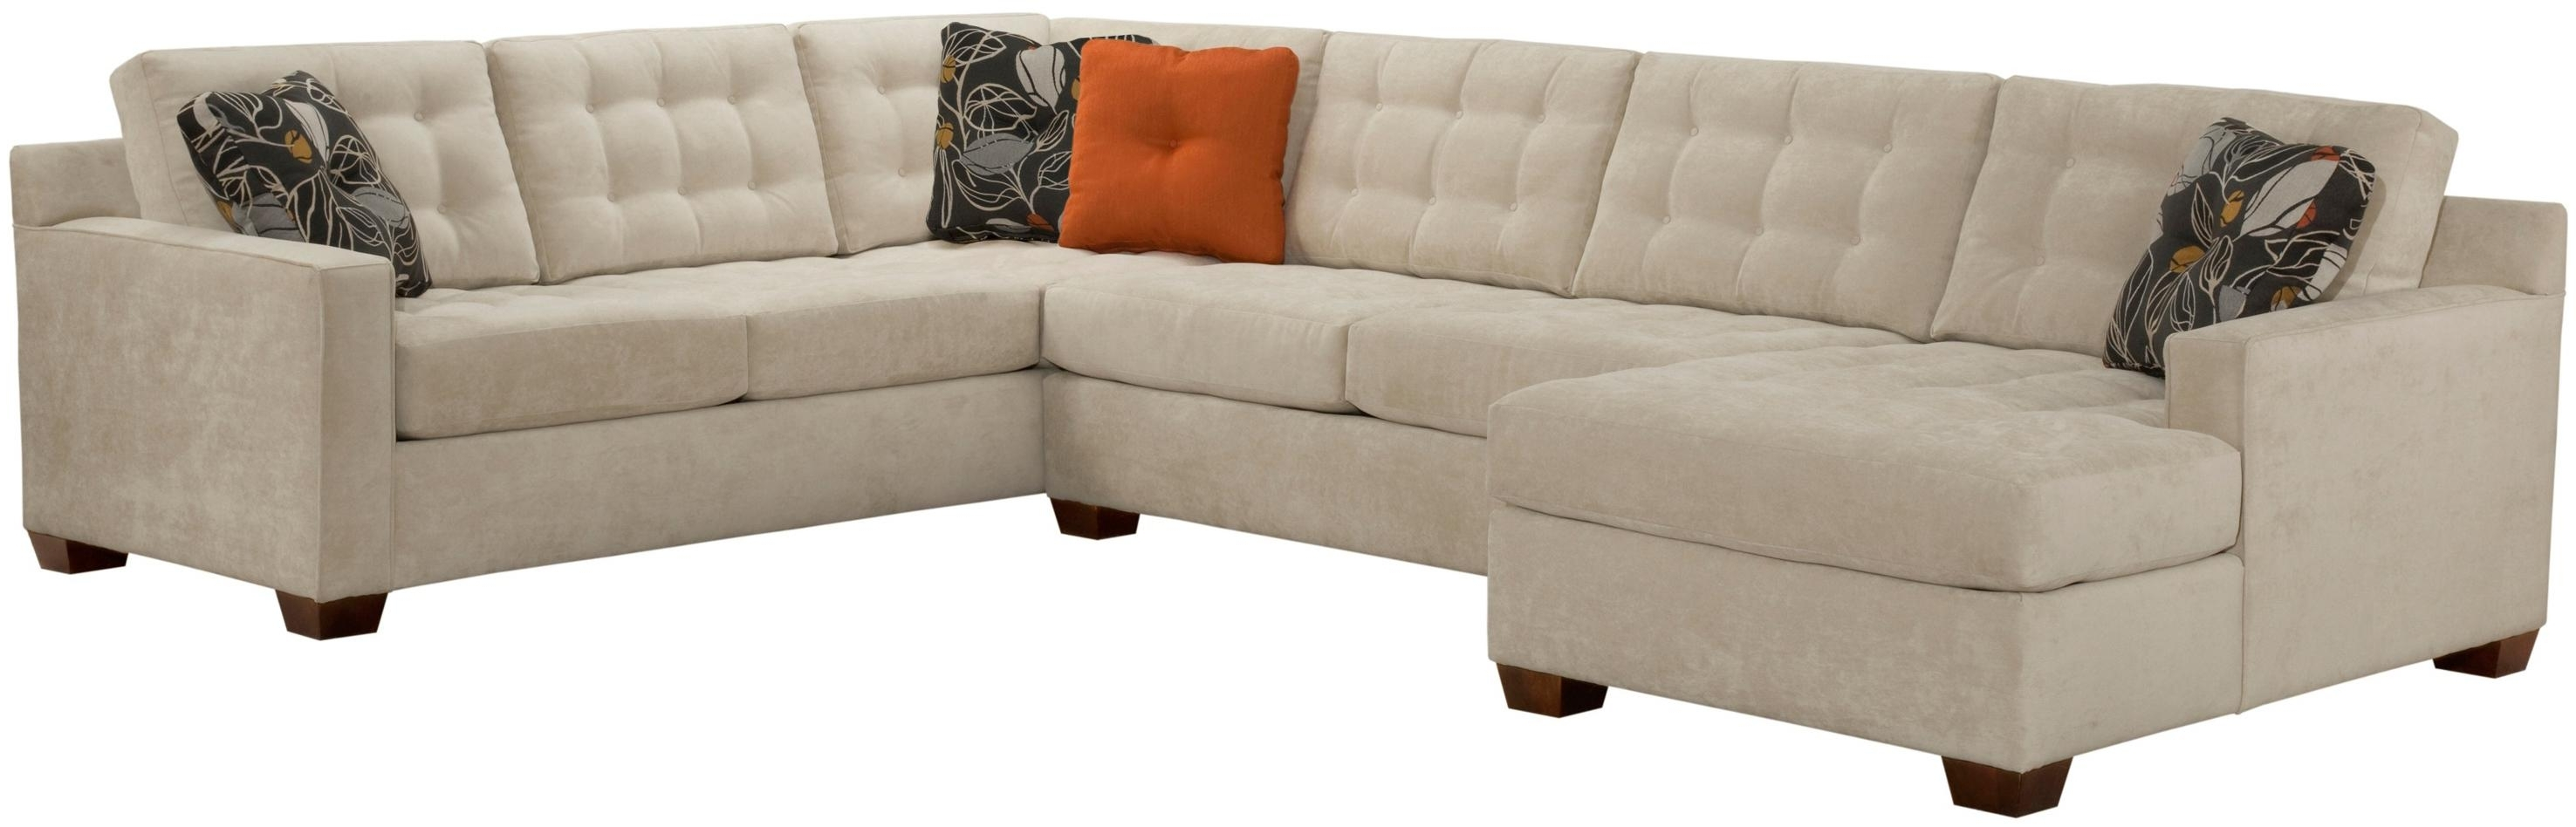 Well Known Broyhill Sectional Sofas Intended For Broyhill Furniture Tribeca Contemporary Sectional Sofa With Left (View 9 of 15)